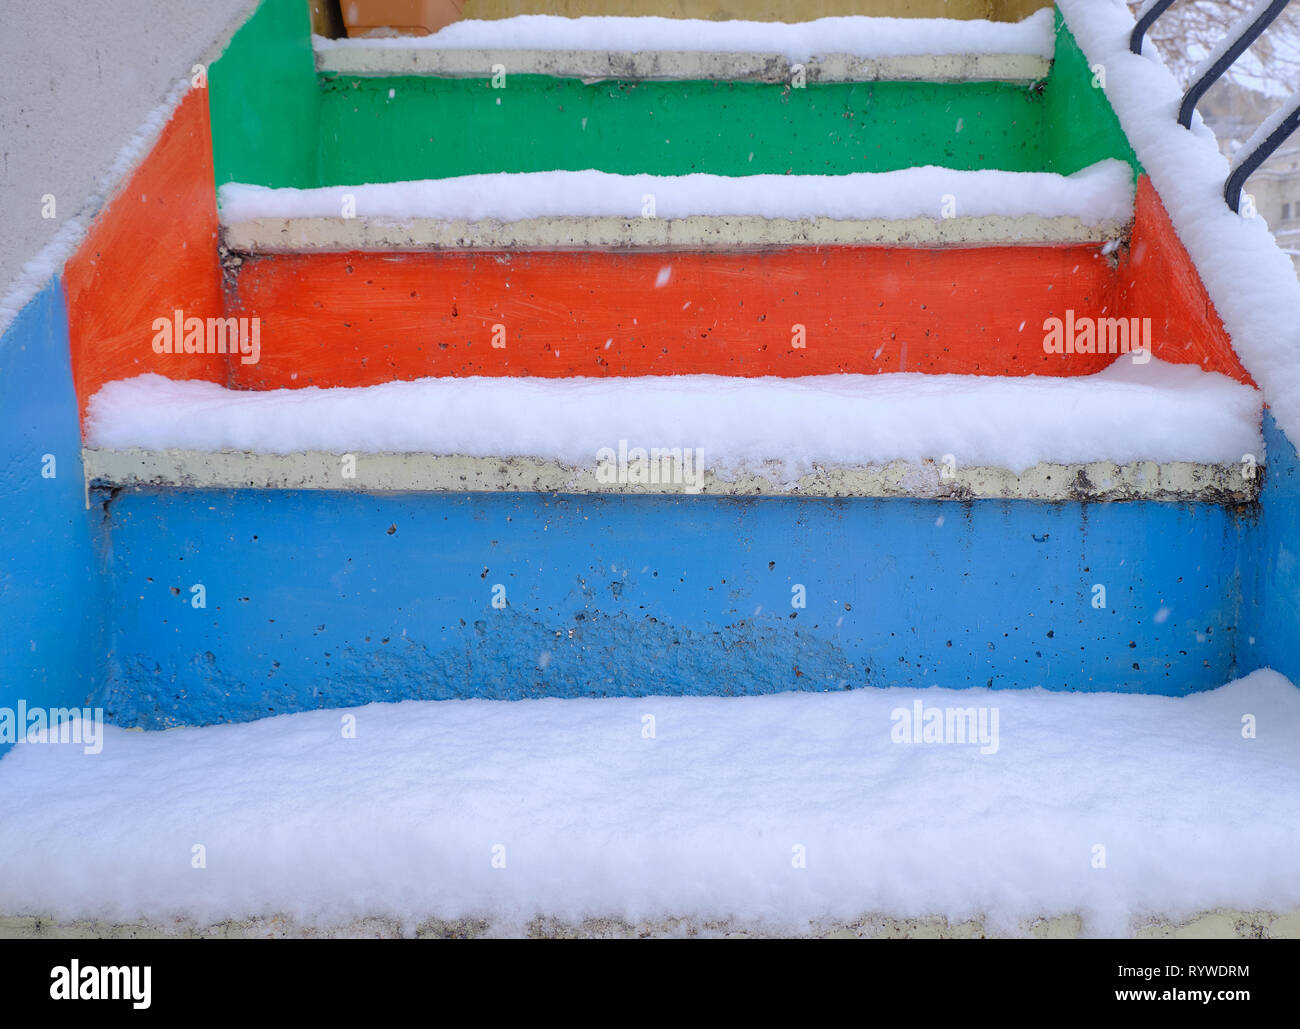 Colorful steps (blue, orange and green) covered in fresh powdery snow Stock Photo